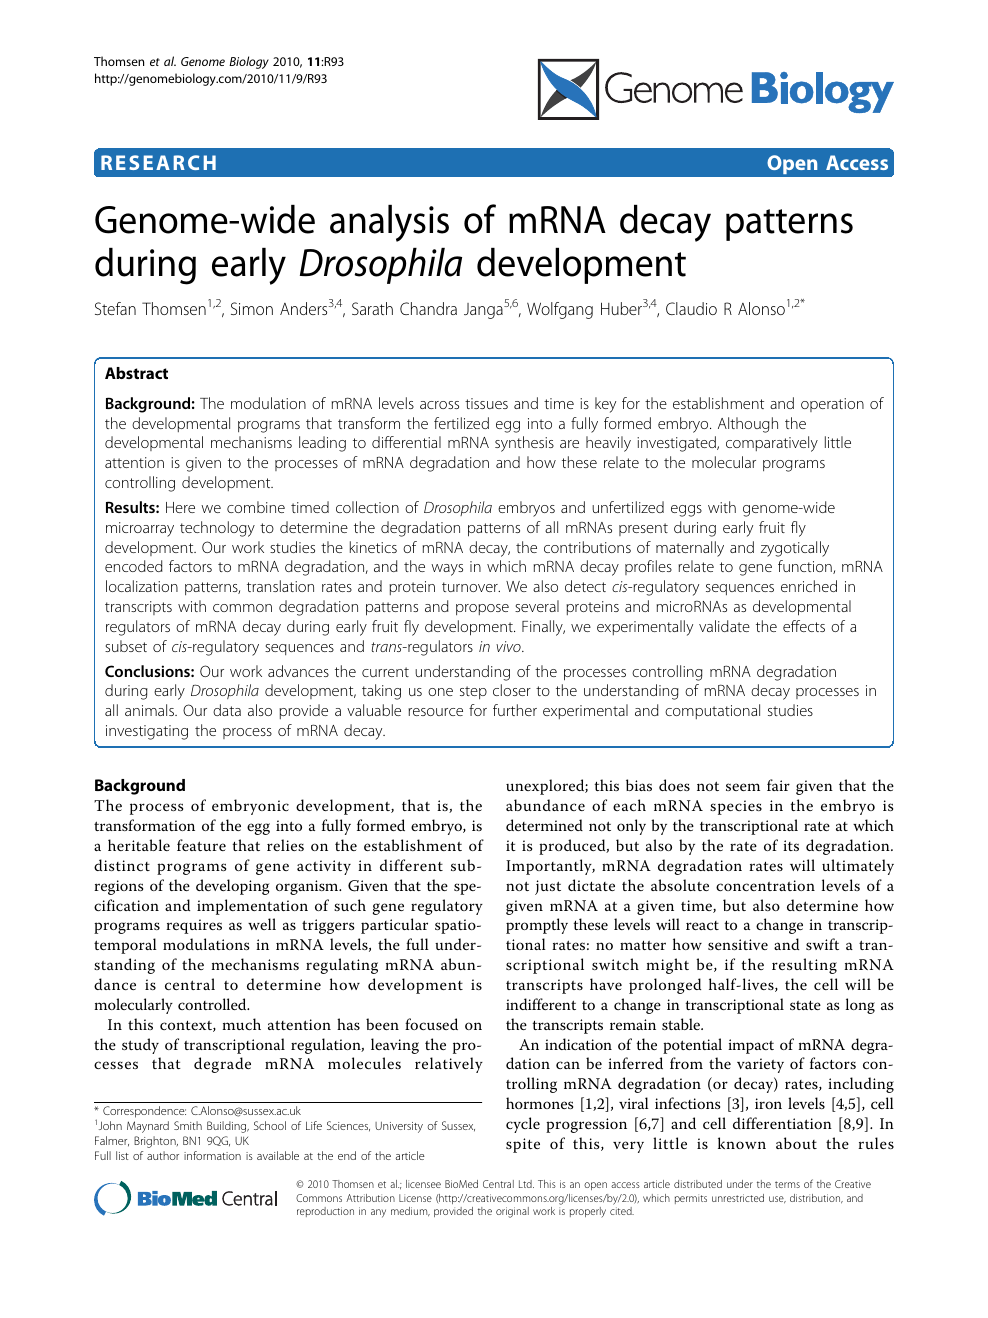 Genome-wide analysis of mRNA decay patterns during early